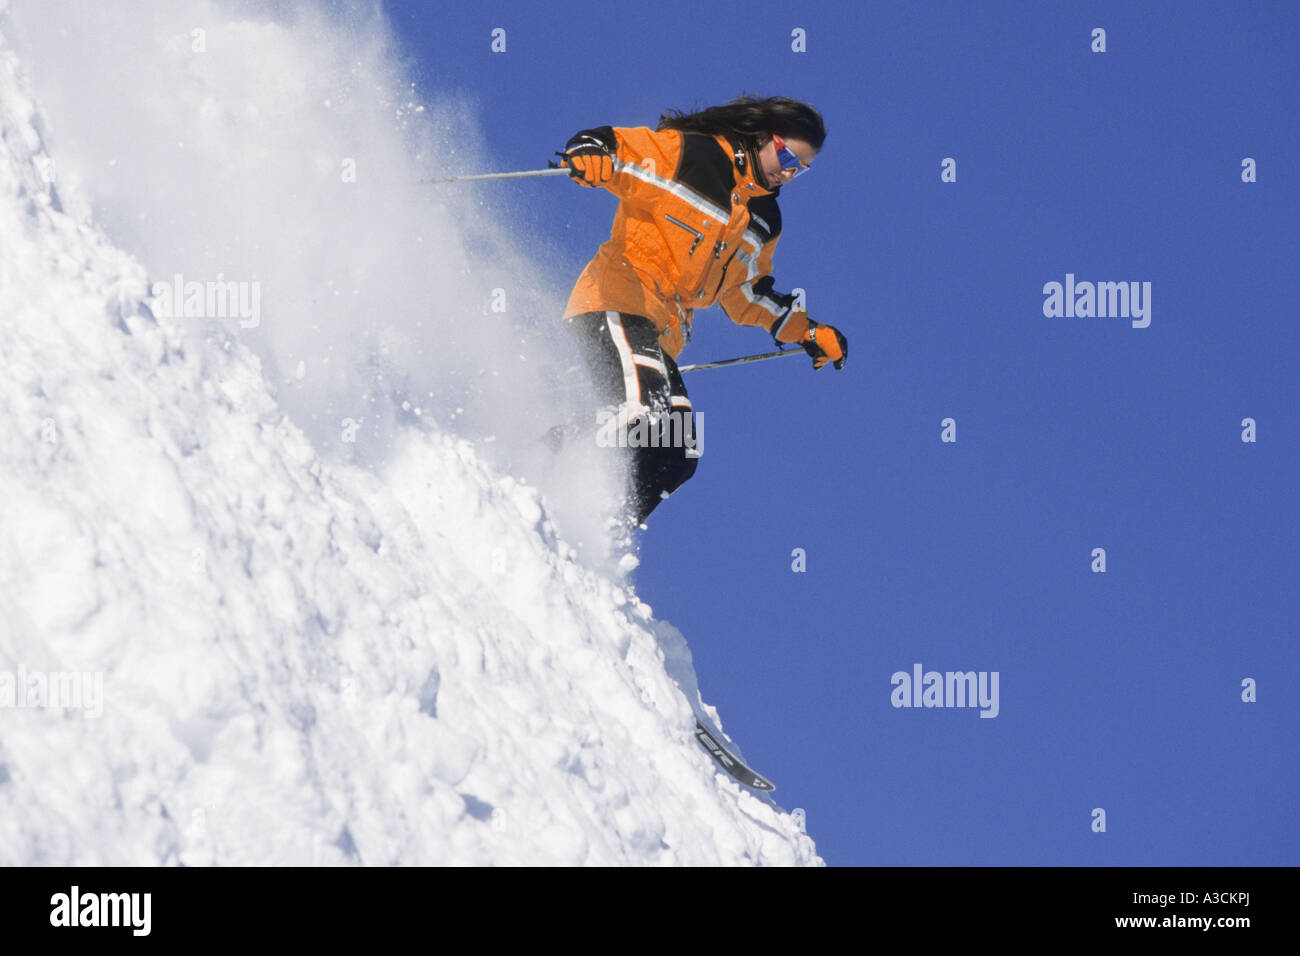 female skier racing downhill, Austria, Alps - Stock Image